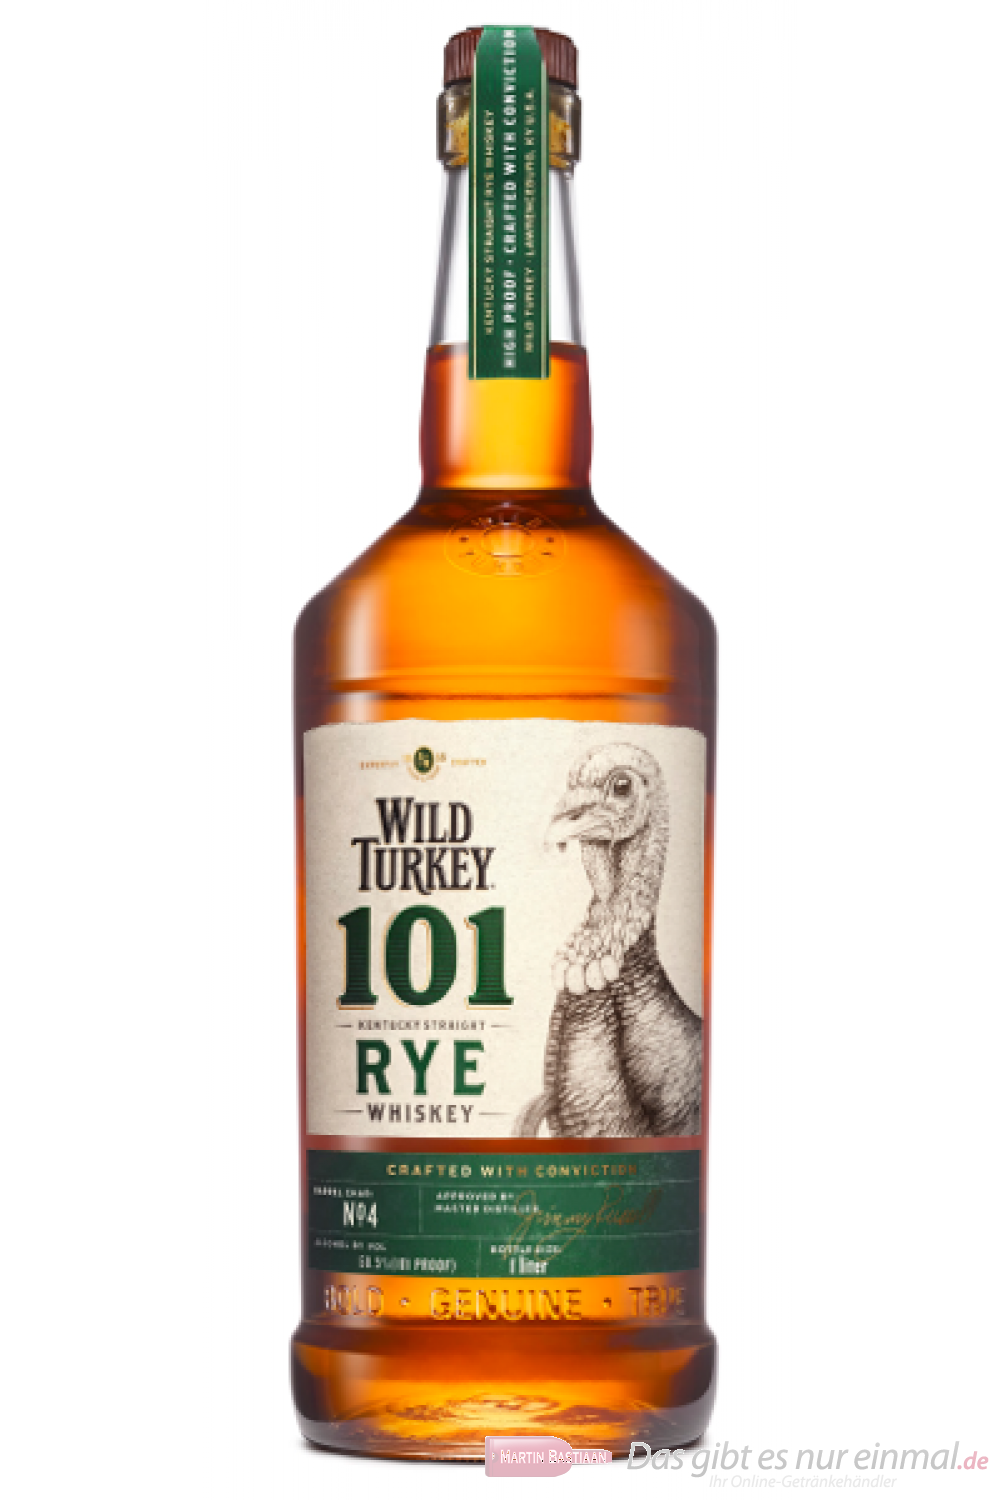 Wild Turkey 101 Rye Kentucky Straight Rye Whiskey 1l